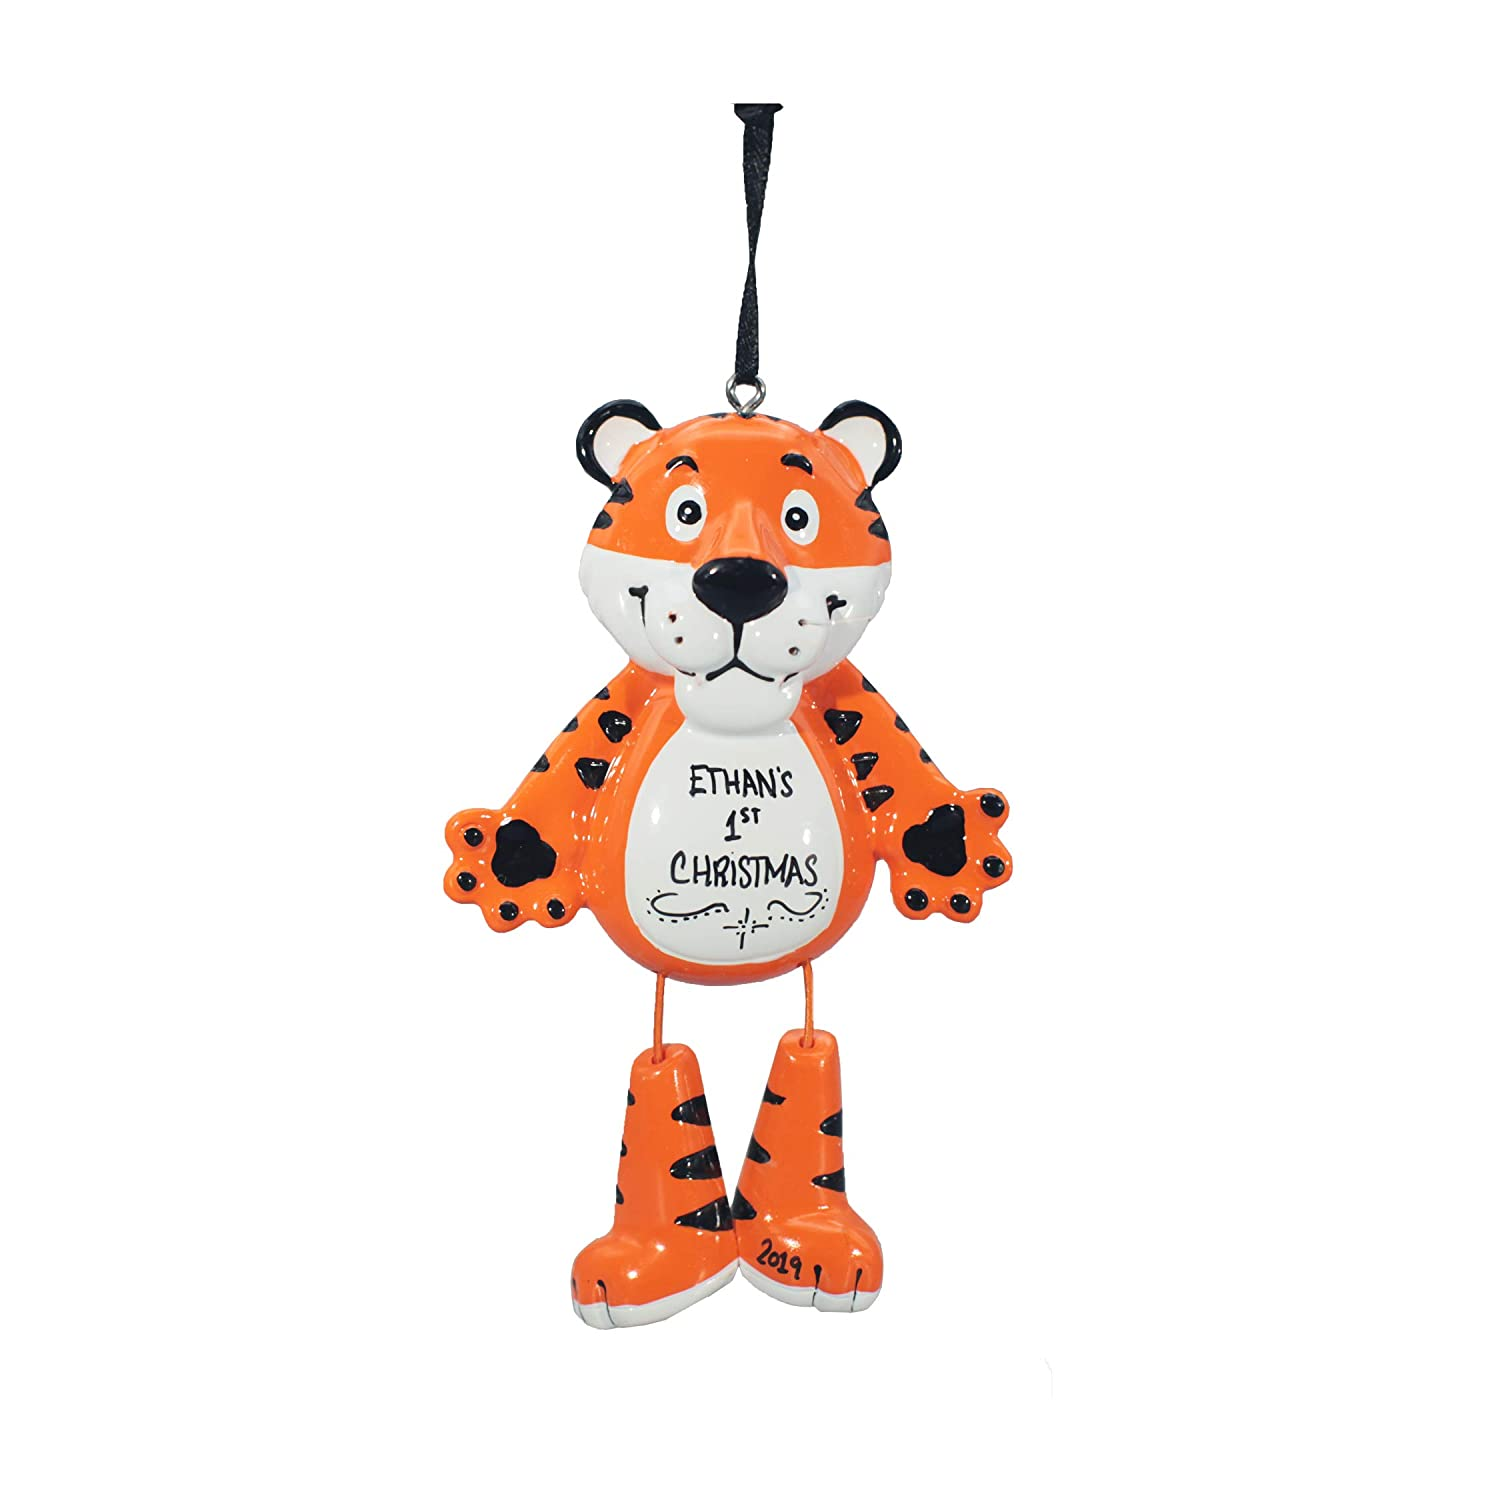 Personalized Christmas Tree Decoration Ornament 2019 – Traditional Home Décor – New Year Santa Gift - Holiday Fun w Hanging Hook - Animal (Tiger) - Free Customization